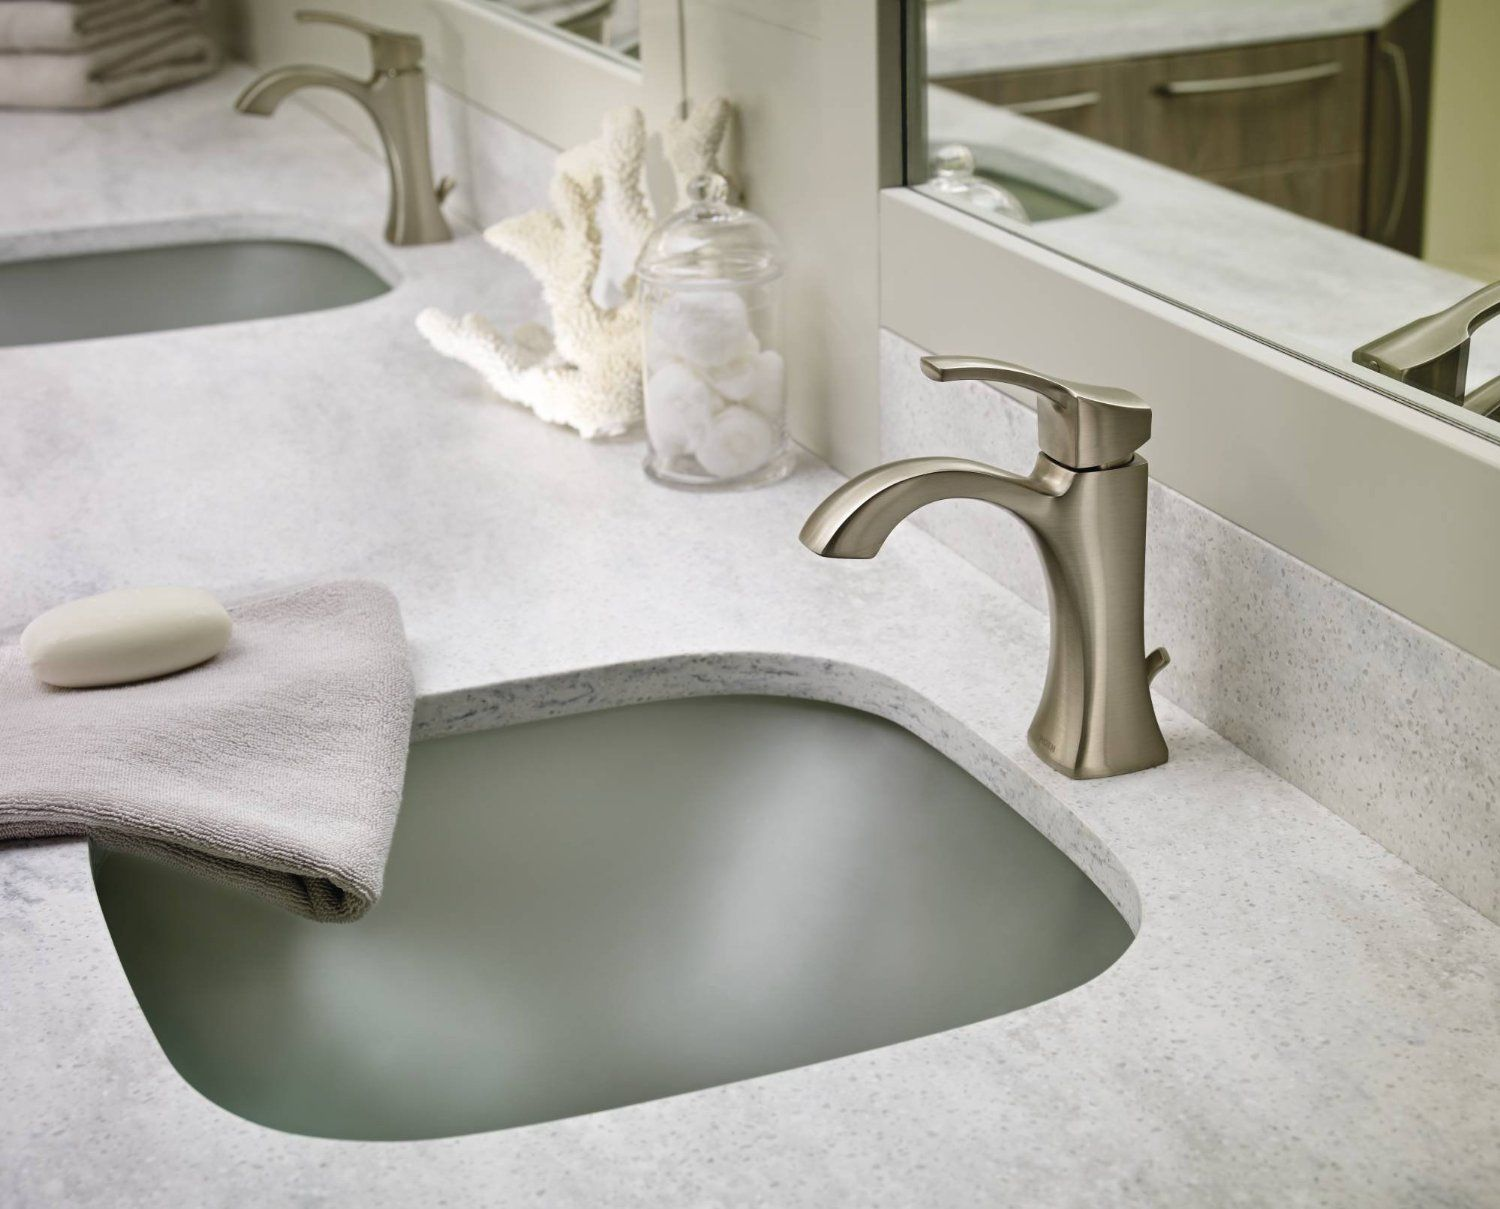 This Voss high arc bathroom faucet features crisp edges and a ...